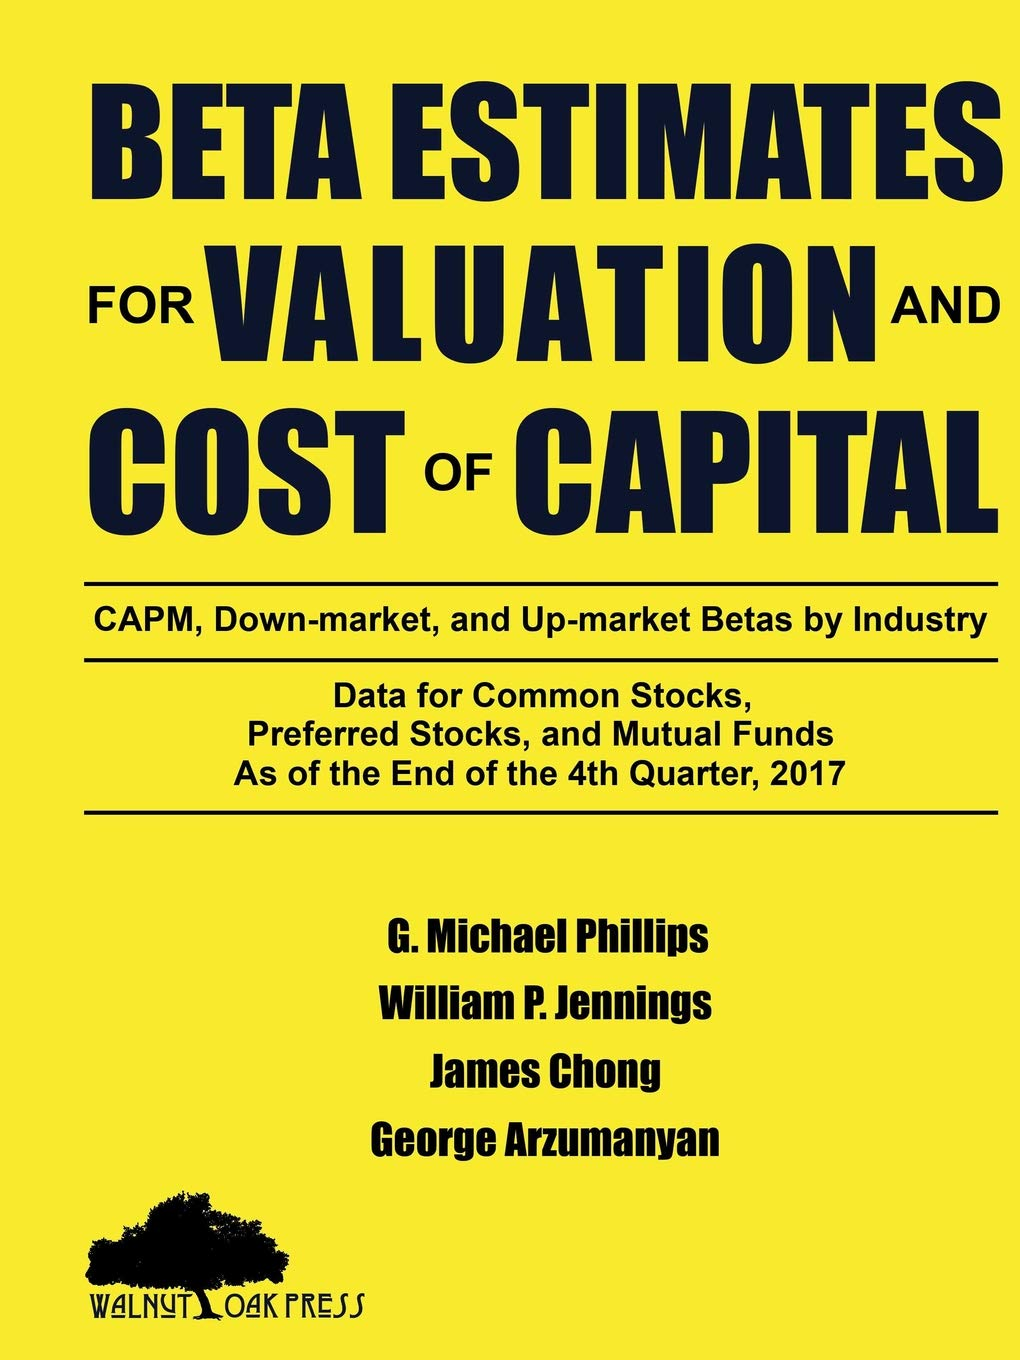 Beta Estimates for Valuation and Cost of Capital, As of the End of 4th Quarter, 2017 PDF ePub fb2 ebook